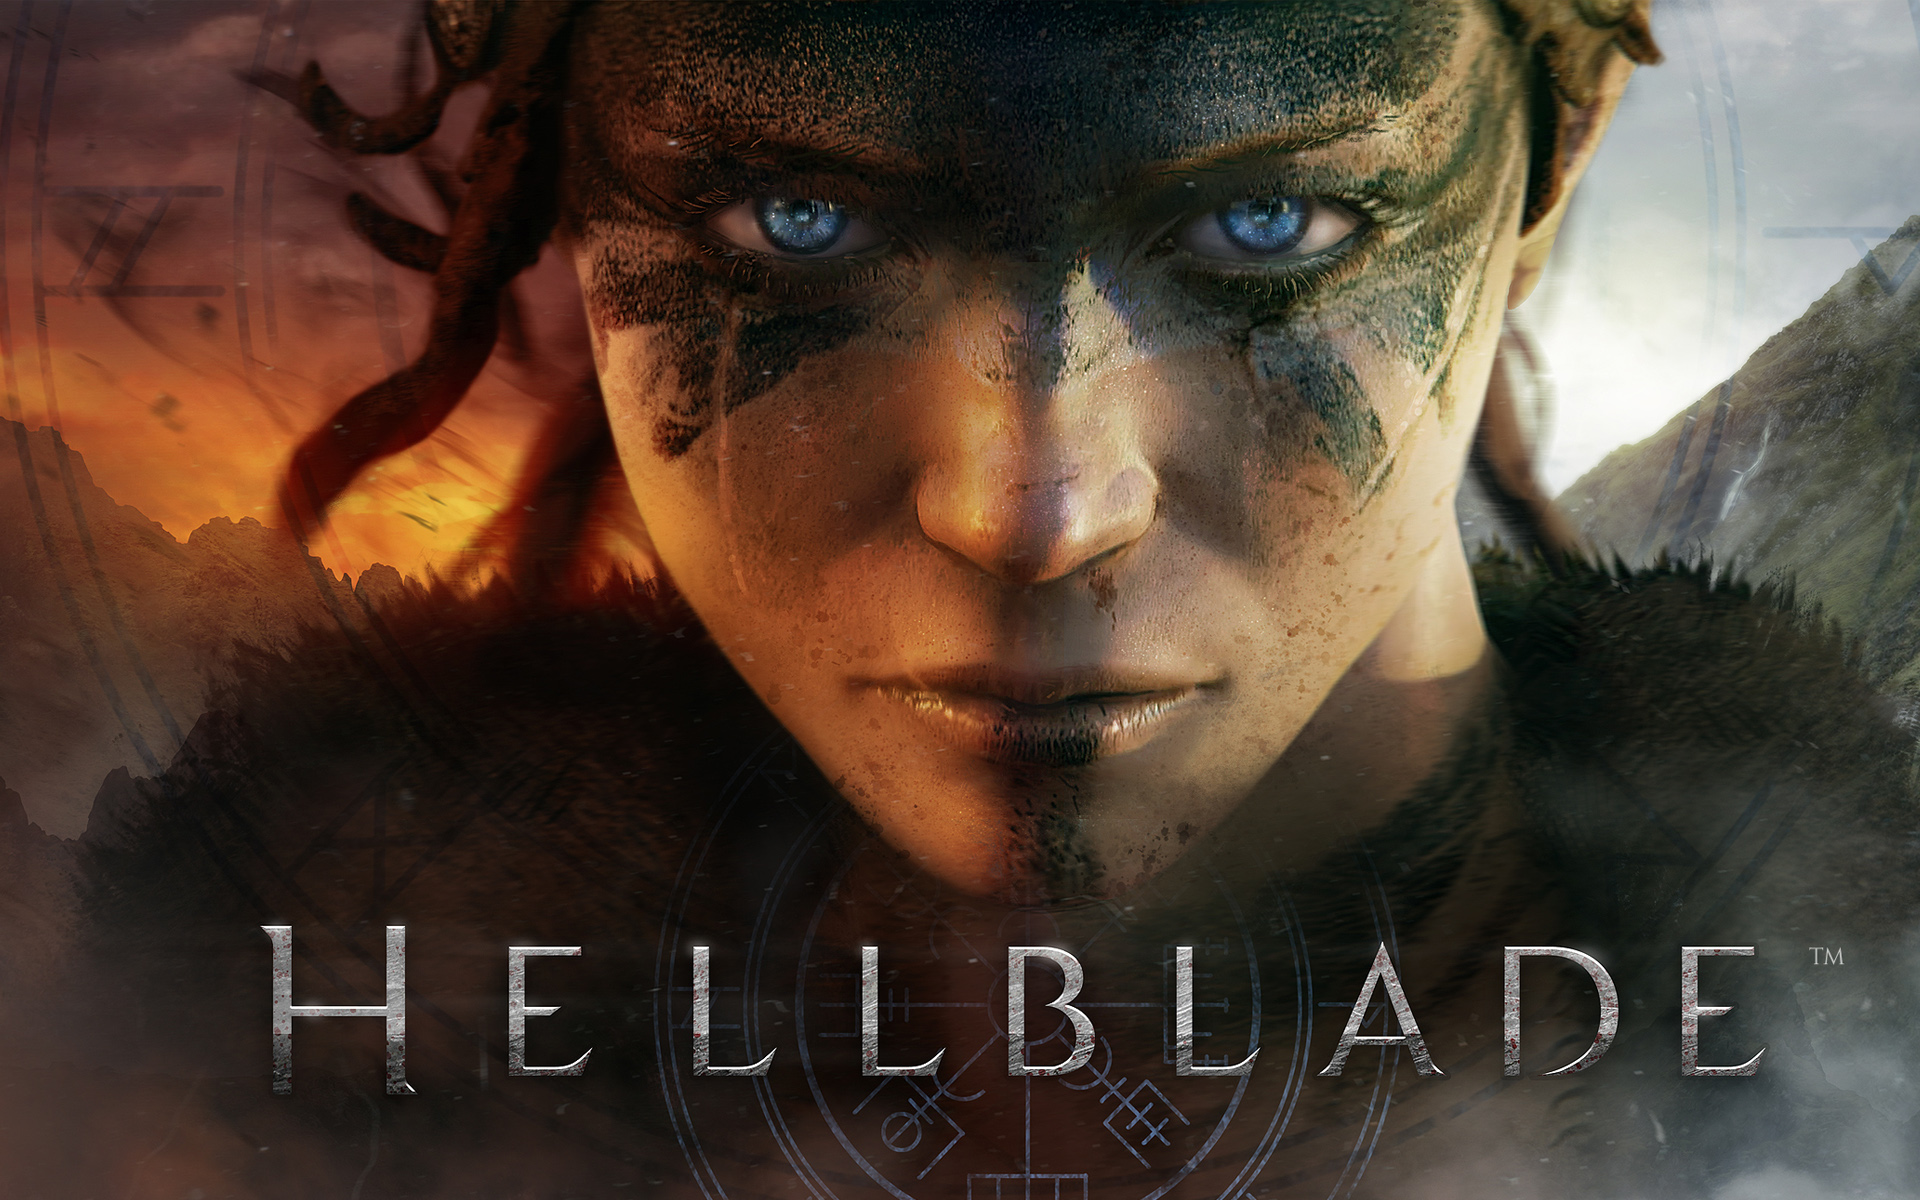 hellblade ps4 game, hd games, 4k wallpapers, images, backgrounds